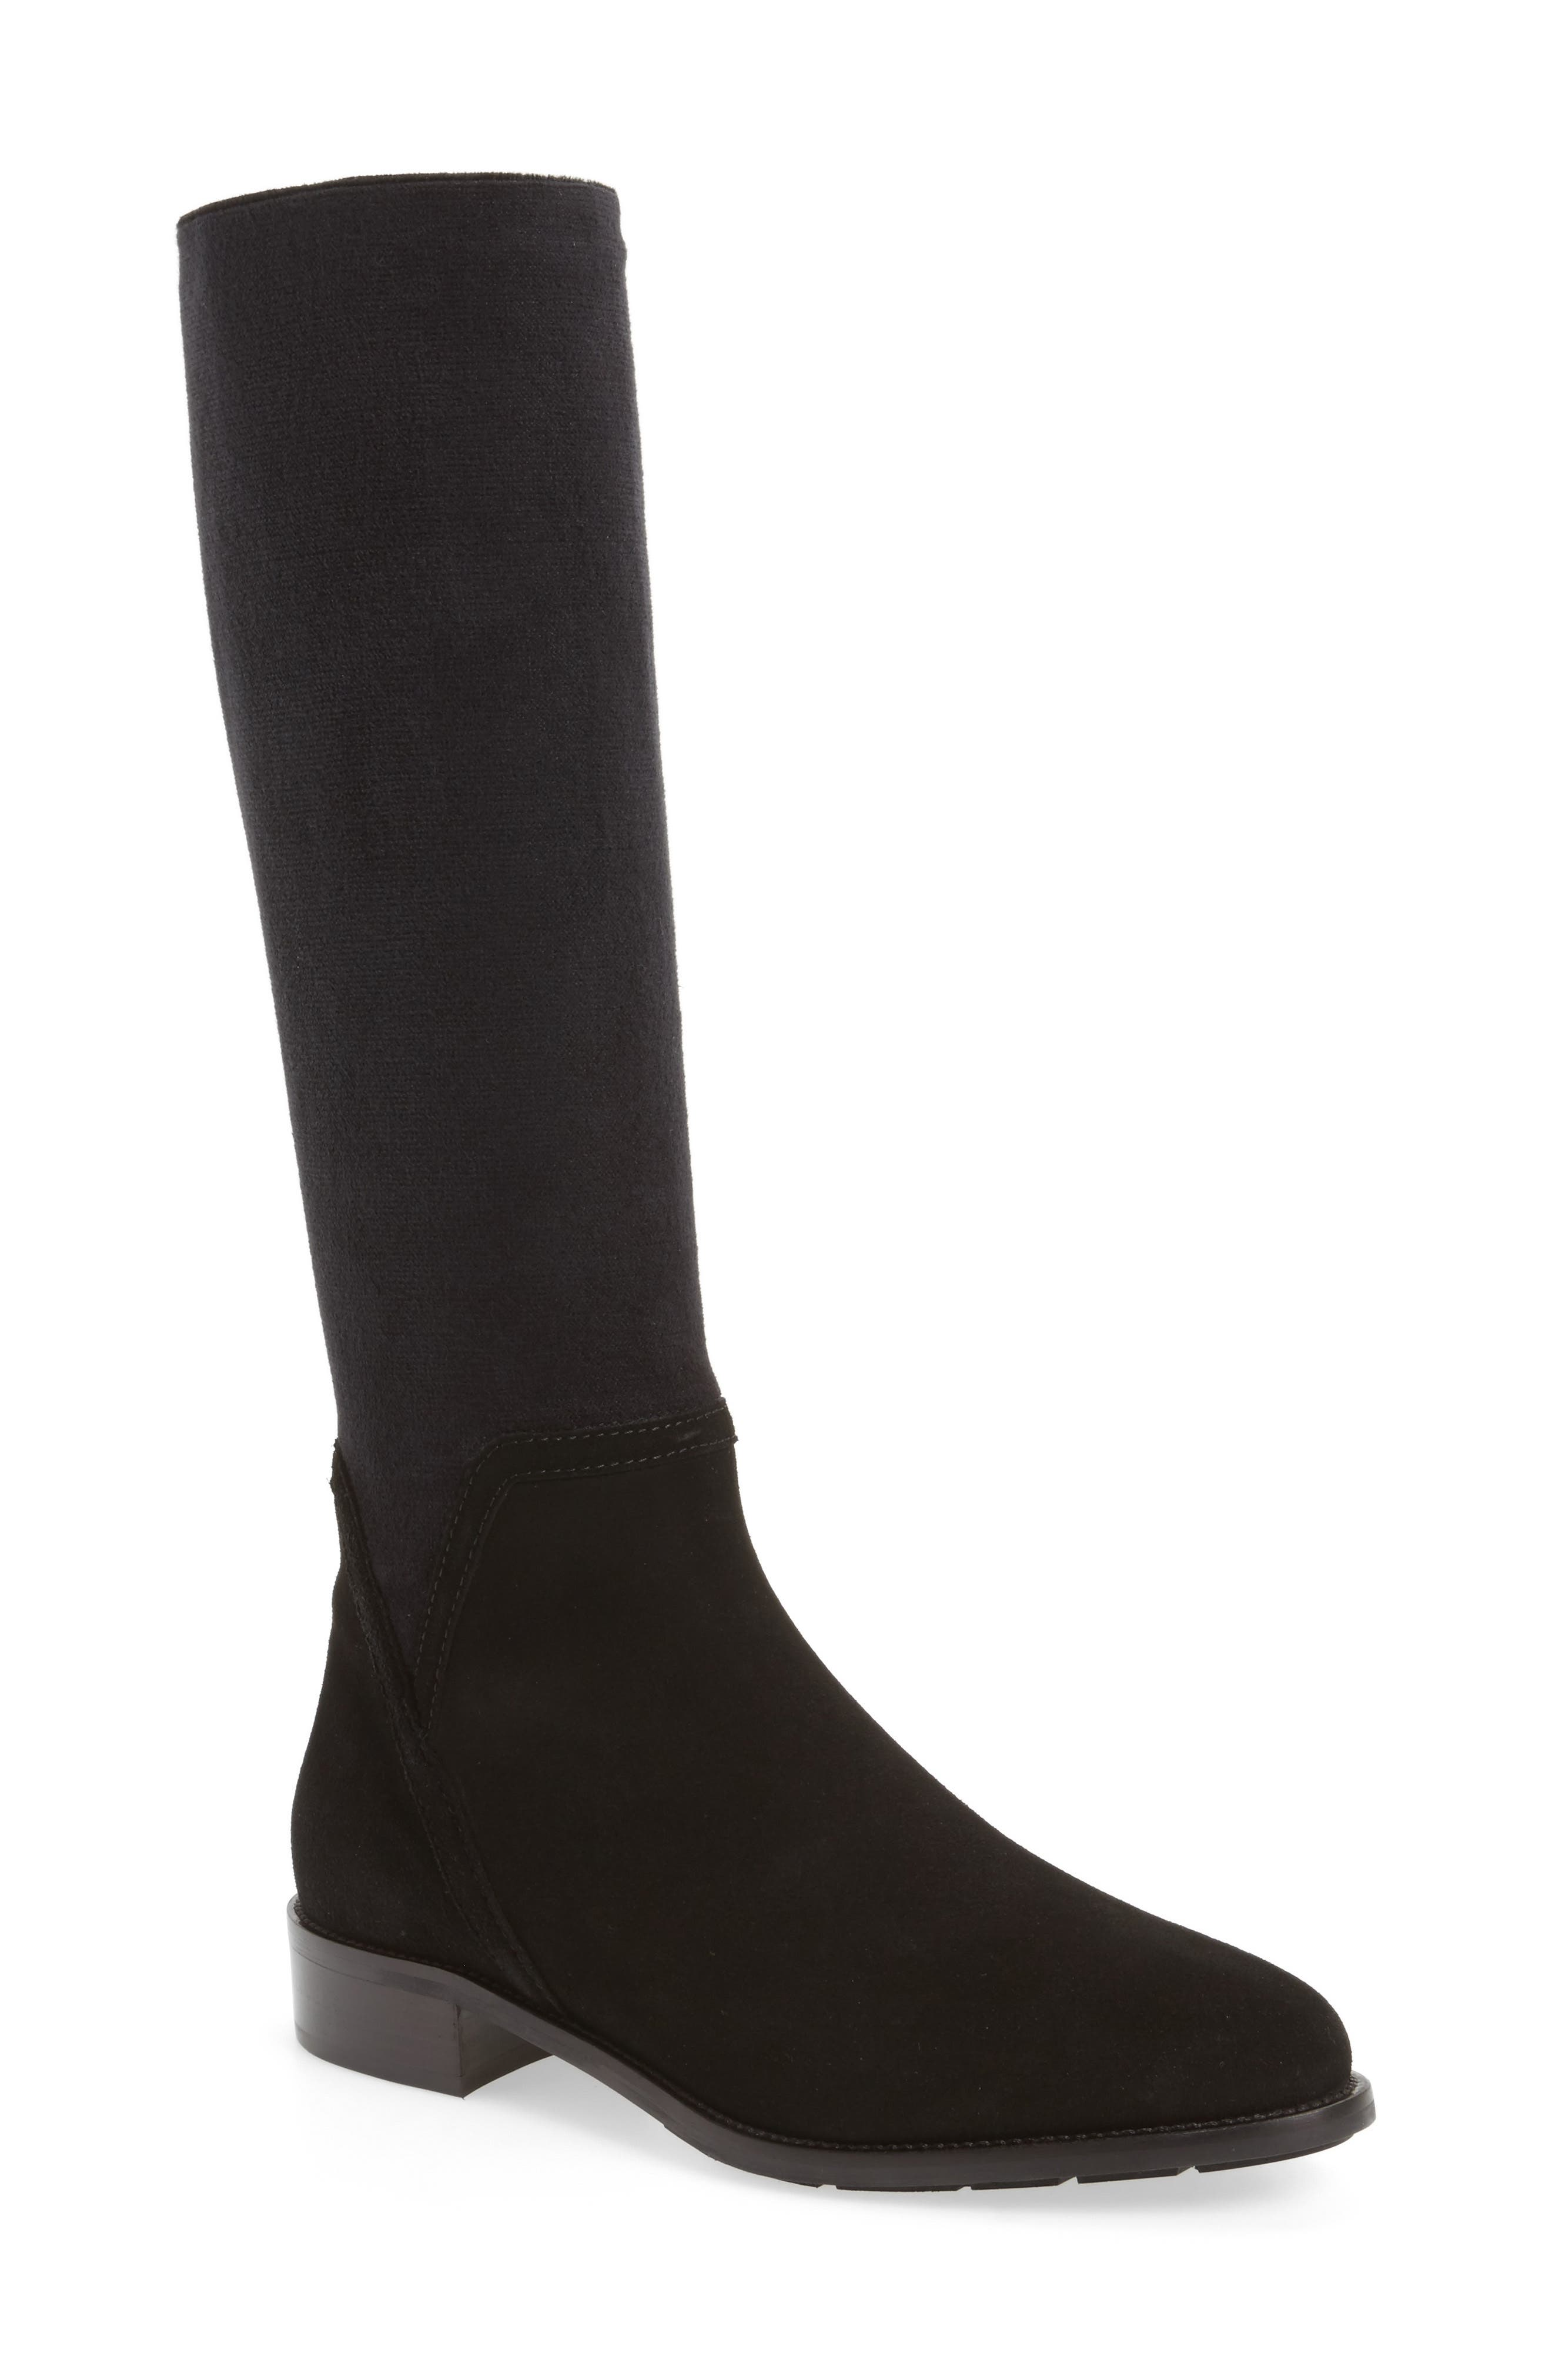 Nicolette Knee High Weatherproof Boot,                             Main thumbnail 1, color,                             Black